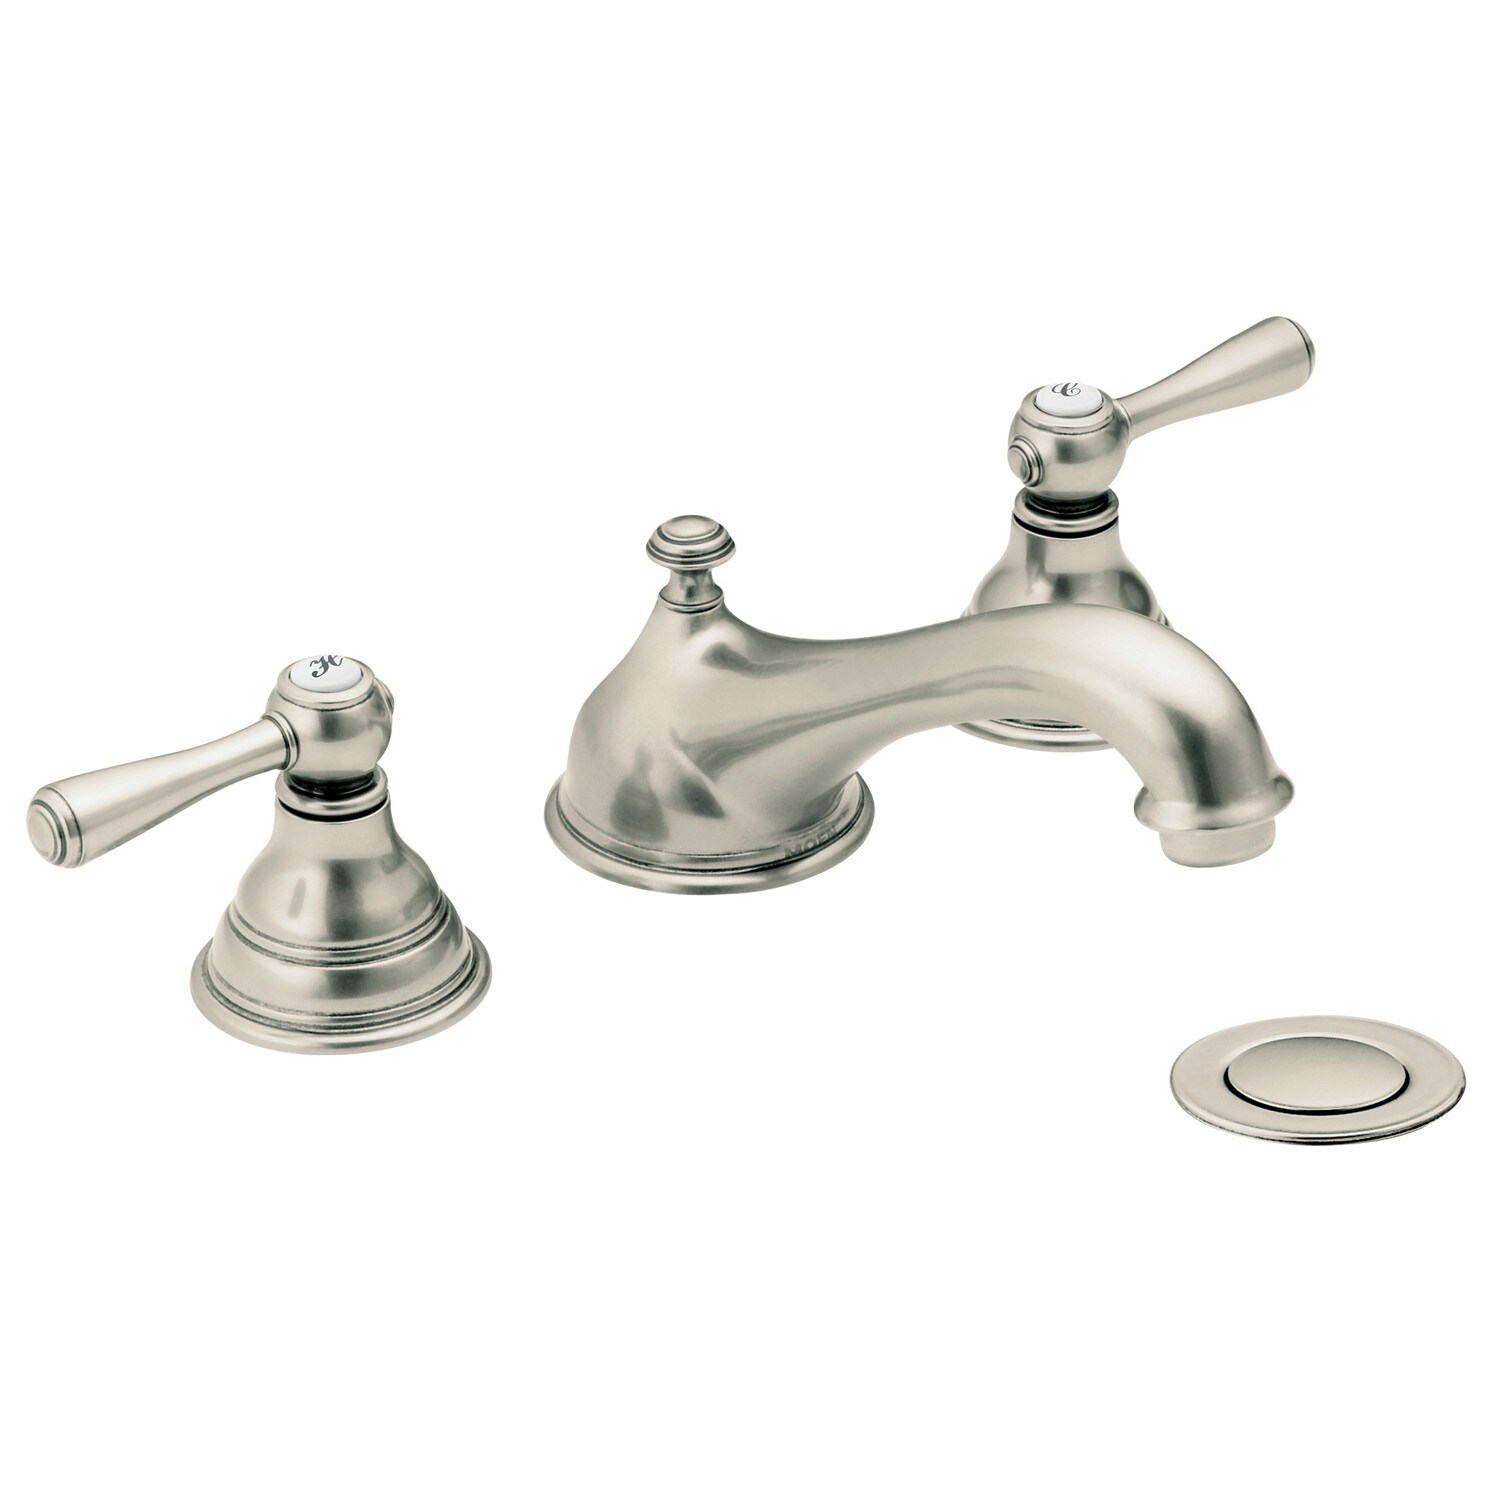 Moen Kingsley Bathroom Faucet Moen T6105an Kingsley 2 Handle Low Arc Antique Nickel Bathroom Faucet